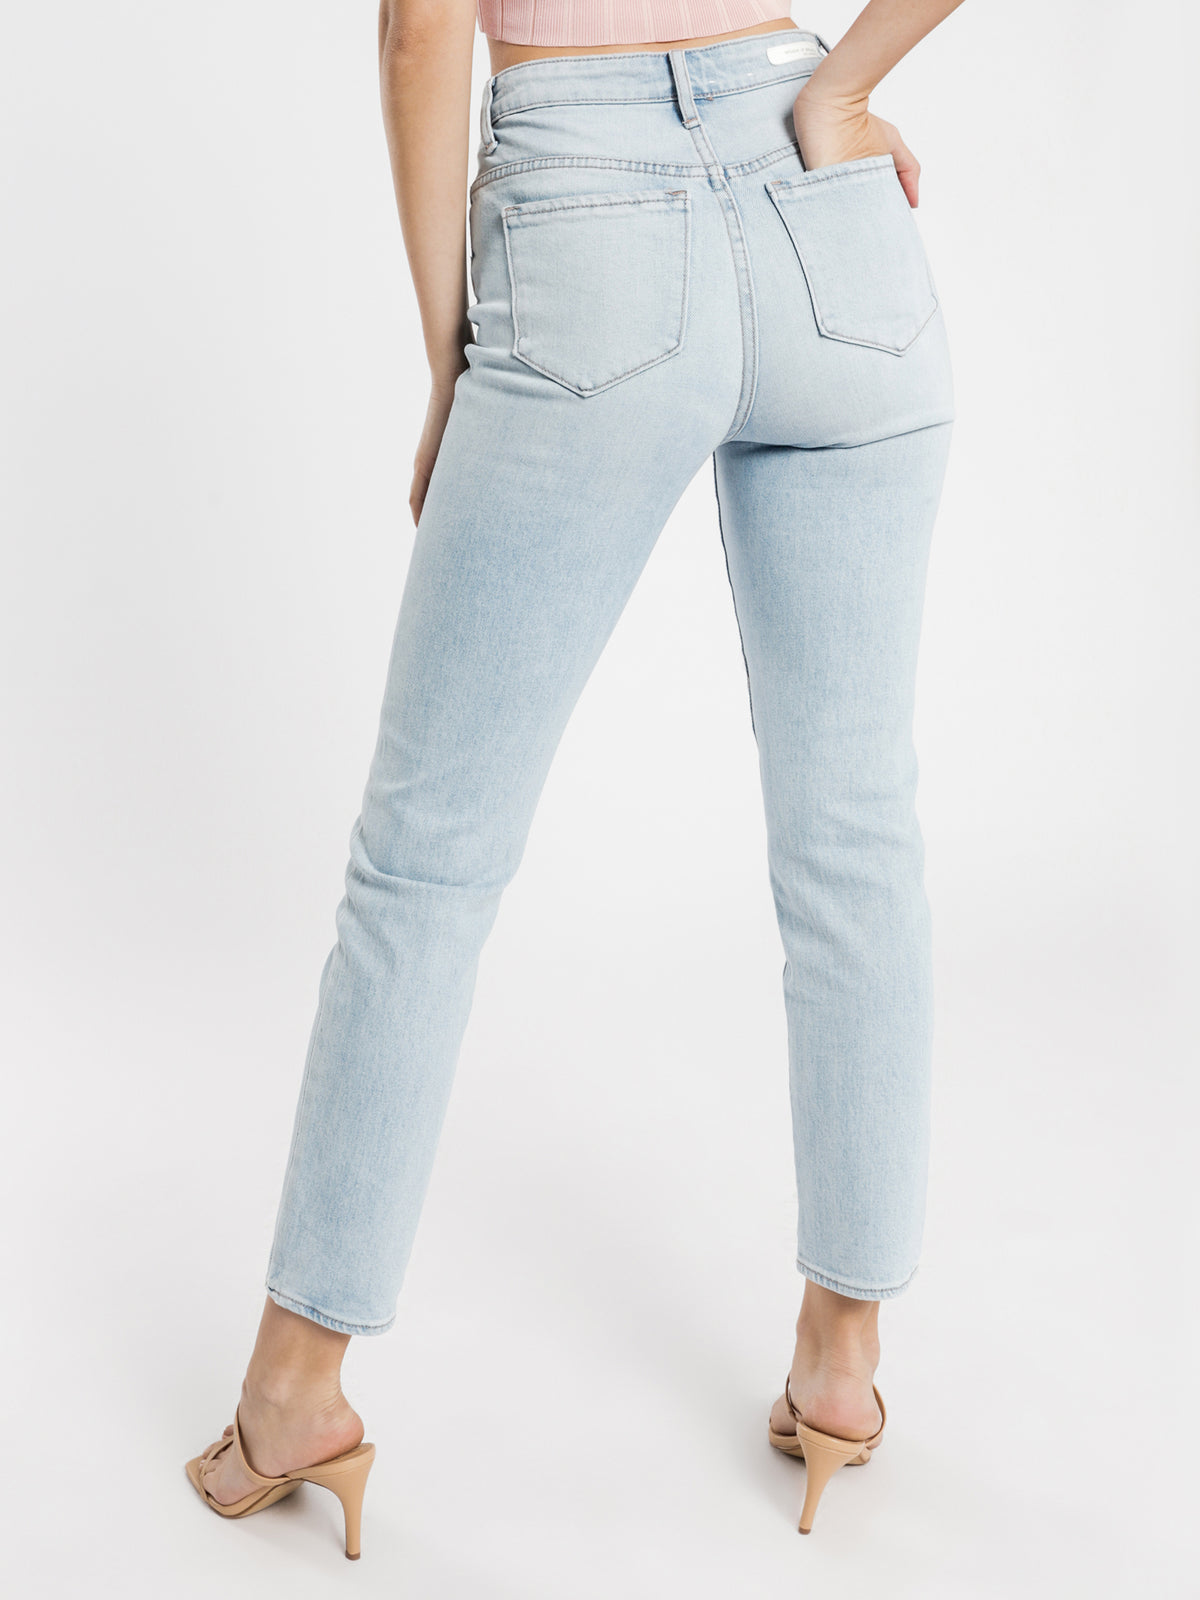 High Amy Mom Jeans in Light Blue Wash Denim